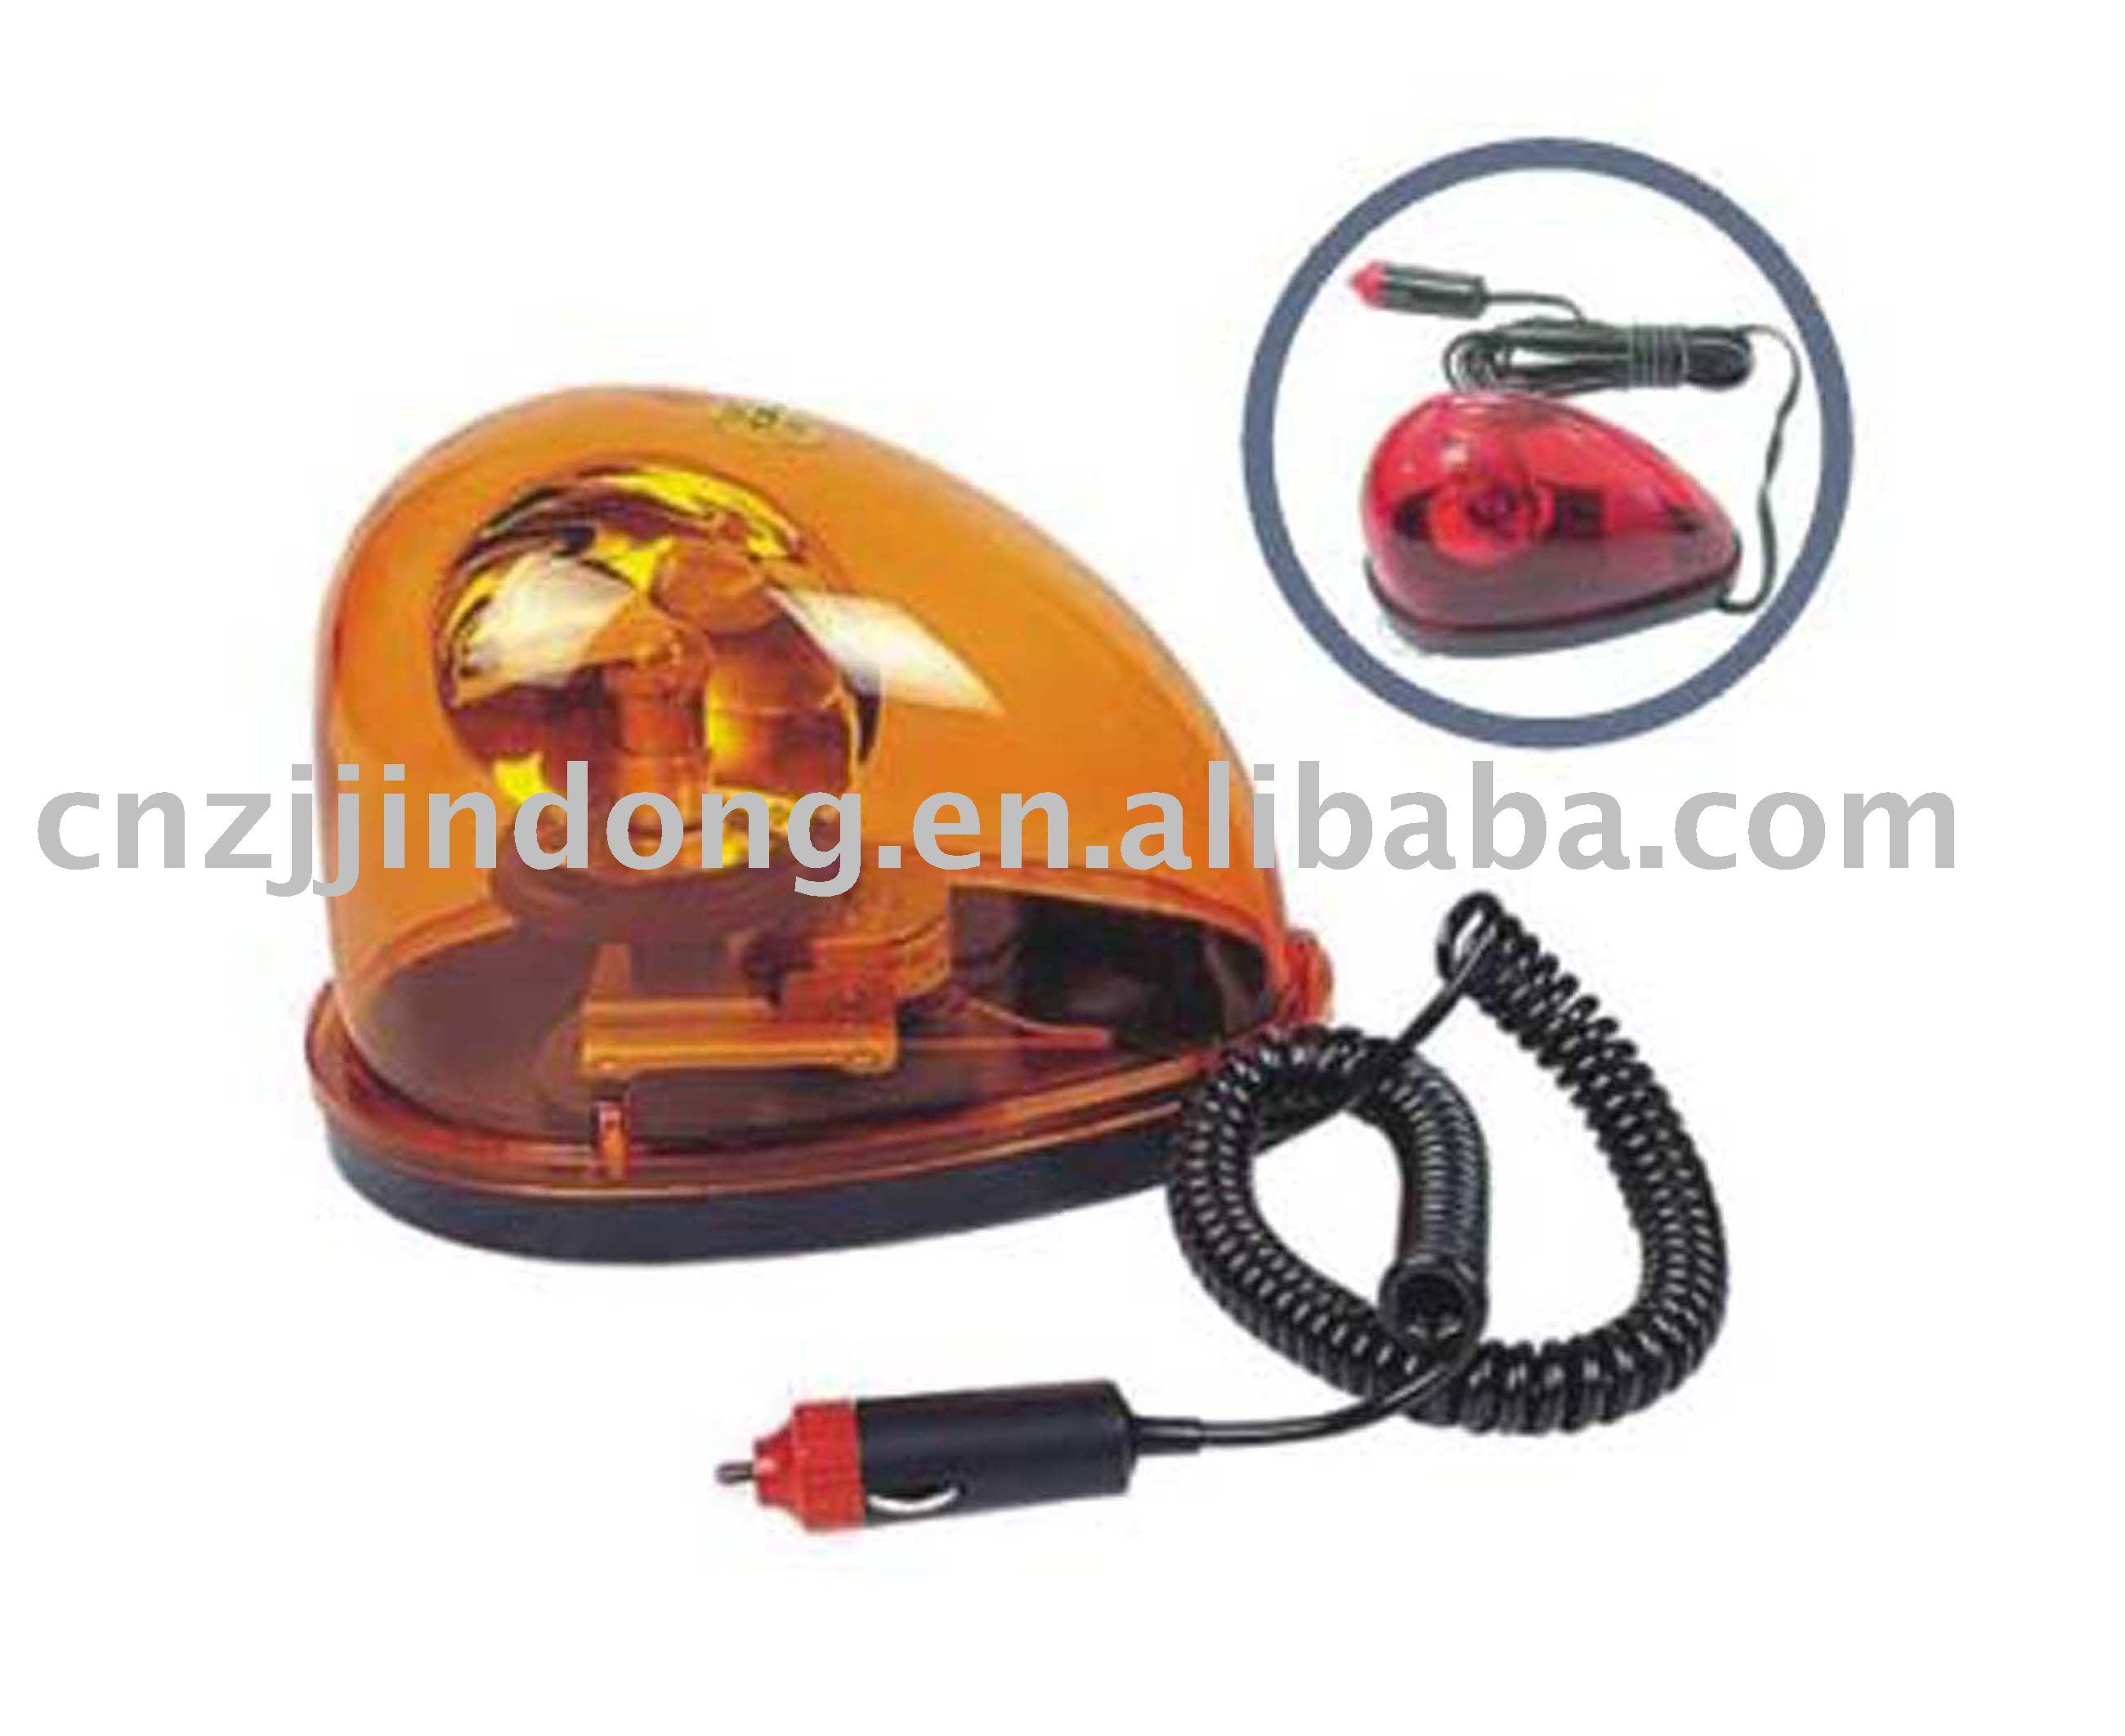 halogen bulb use 2m cord automotive car warning light